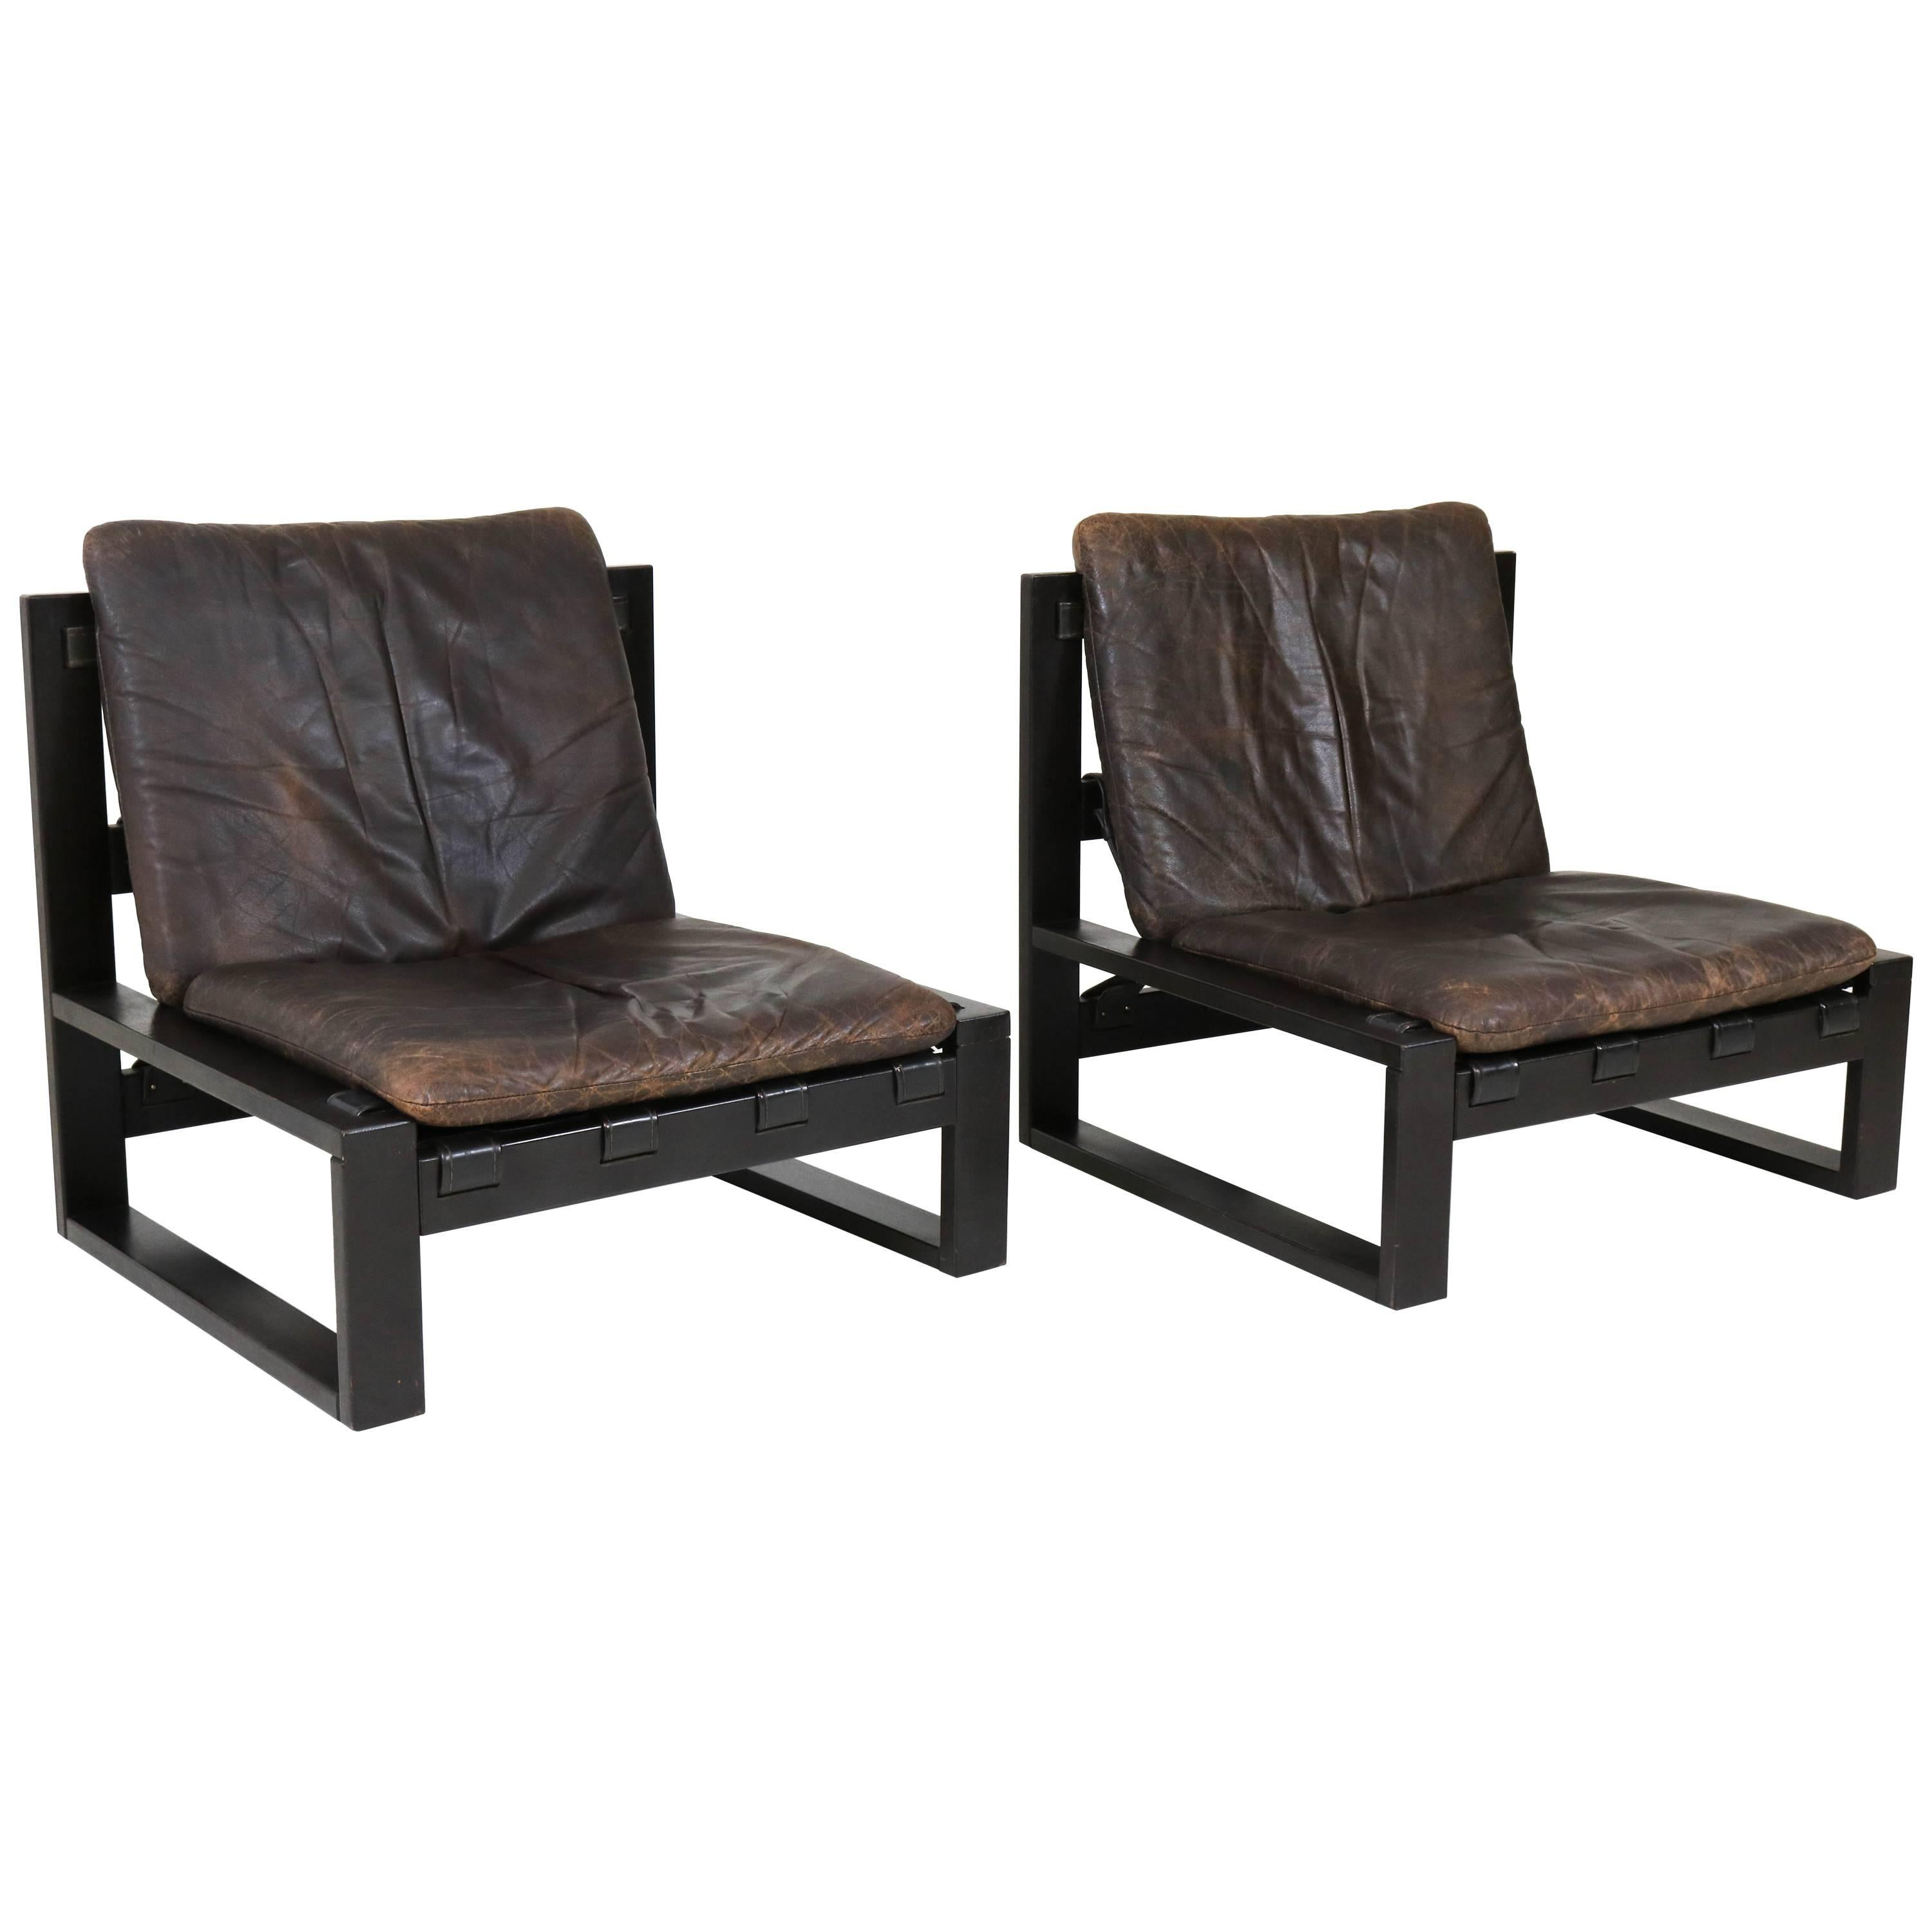 Pair Of Dutch Mid Century Modern Brutalist Lounge Chairs By Sonja Wasseur,  1970s